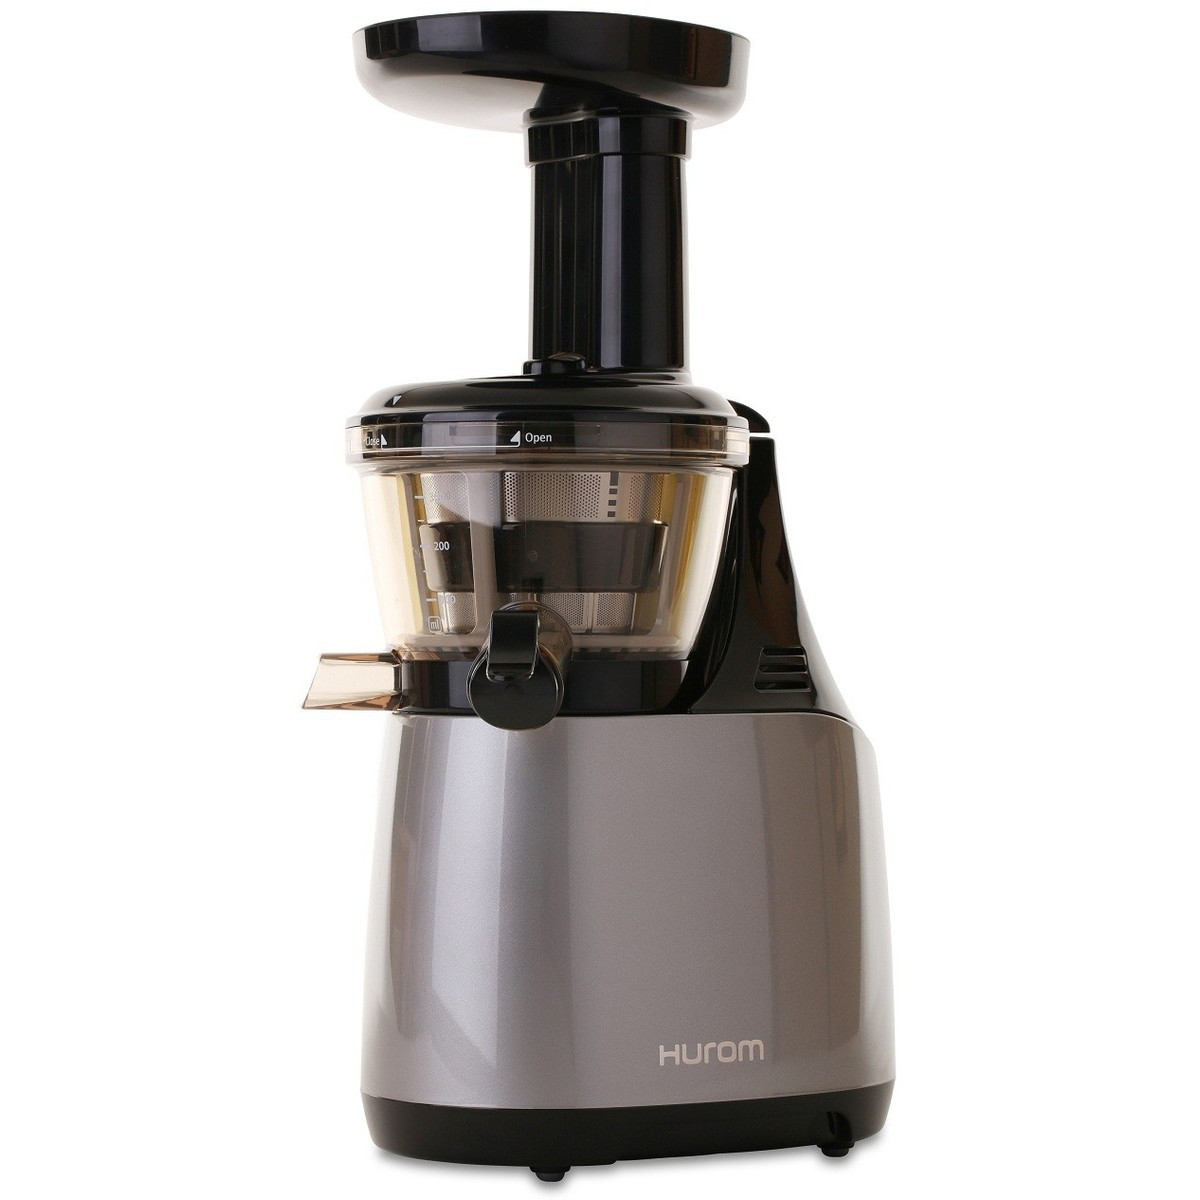 Hurom Slow Juicer Hu 500dg : Hurom Slow Juicer HU-500 HE Series - Juicers.ie Ireland s No 1 Juicers website